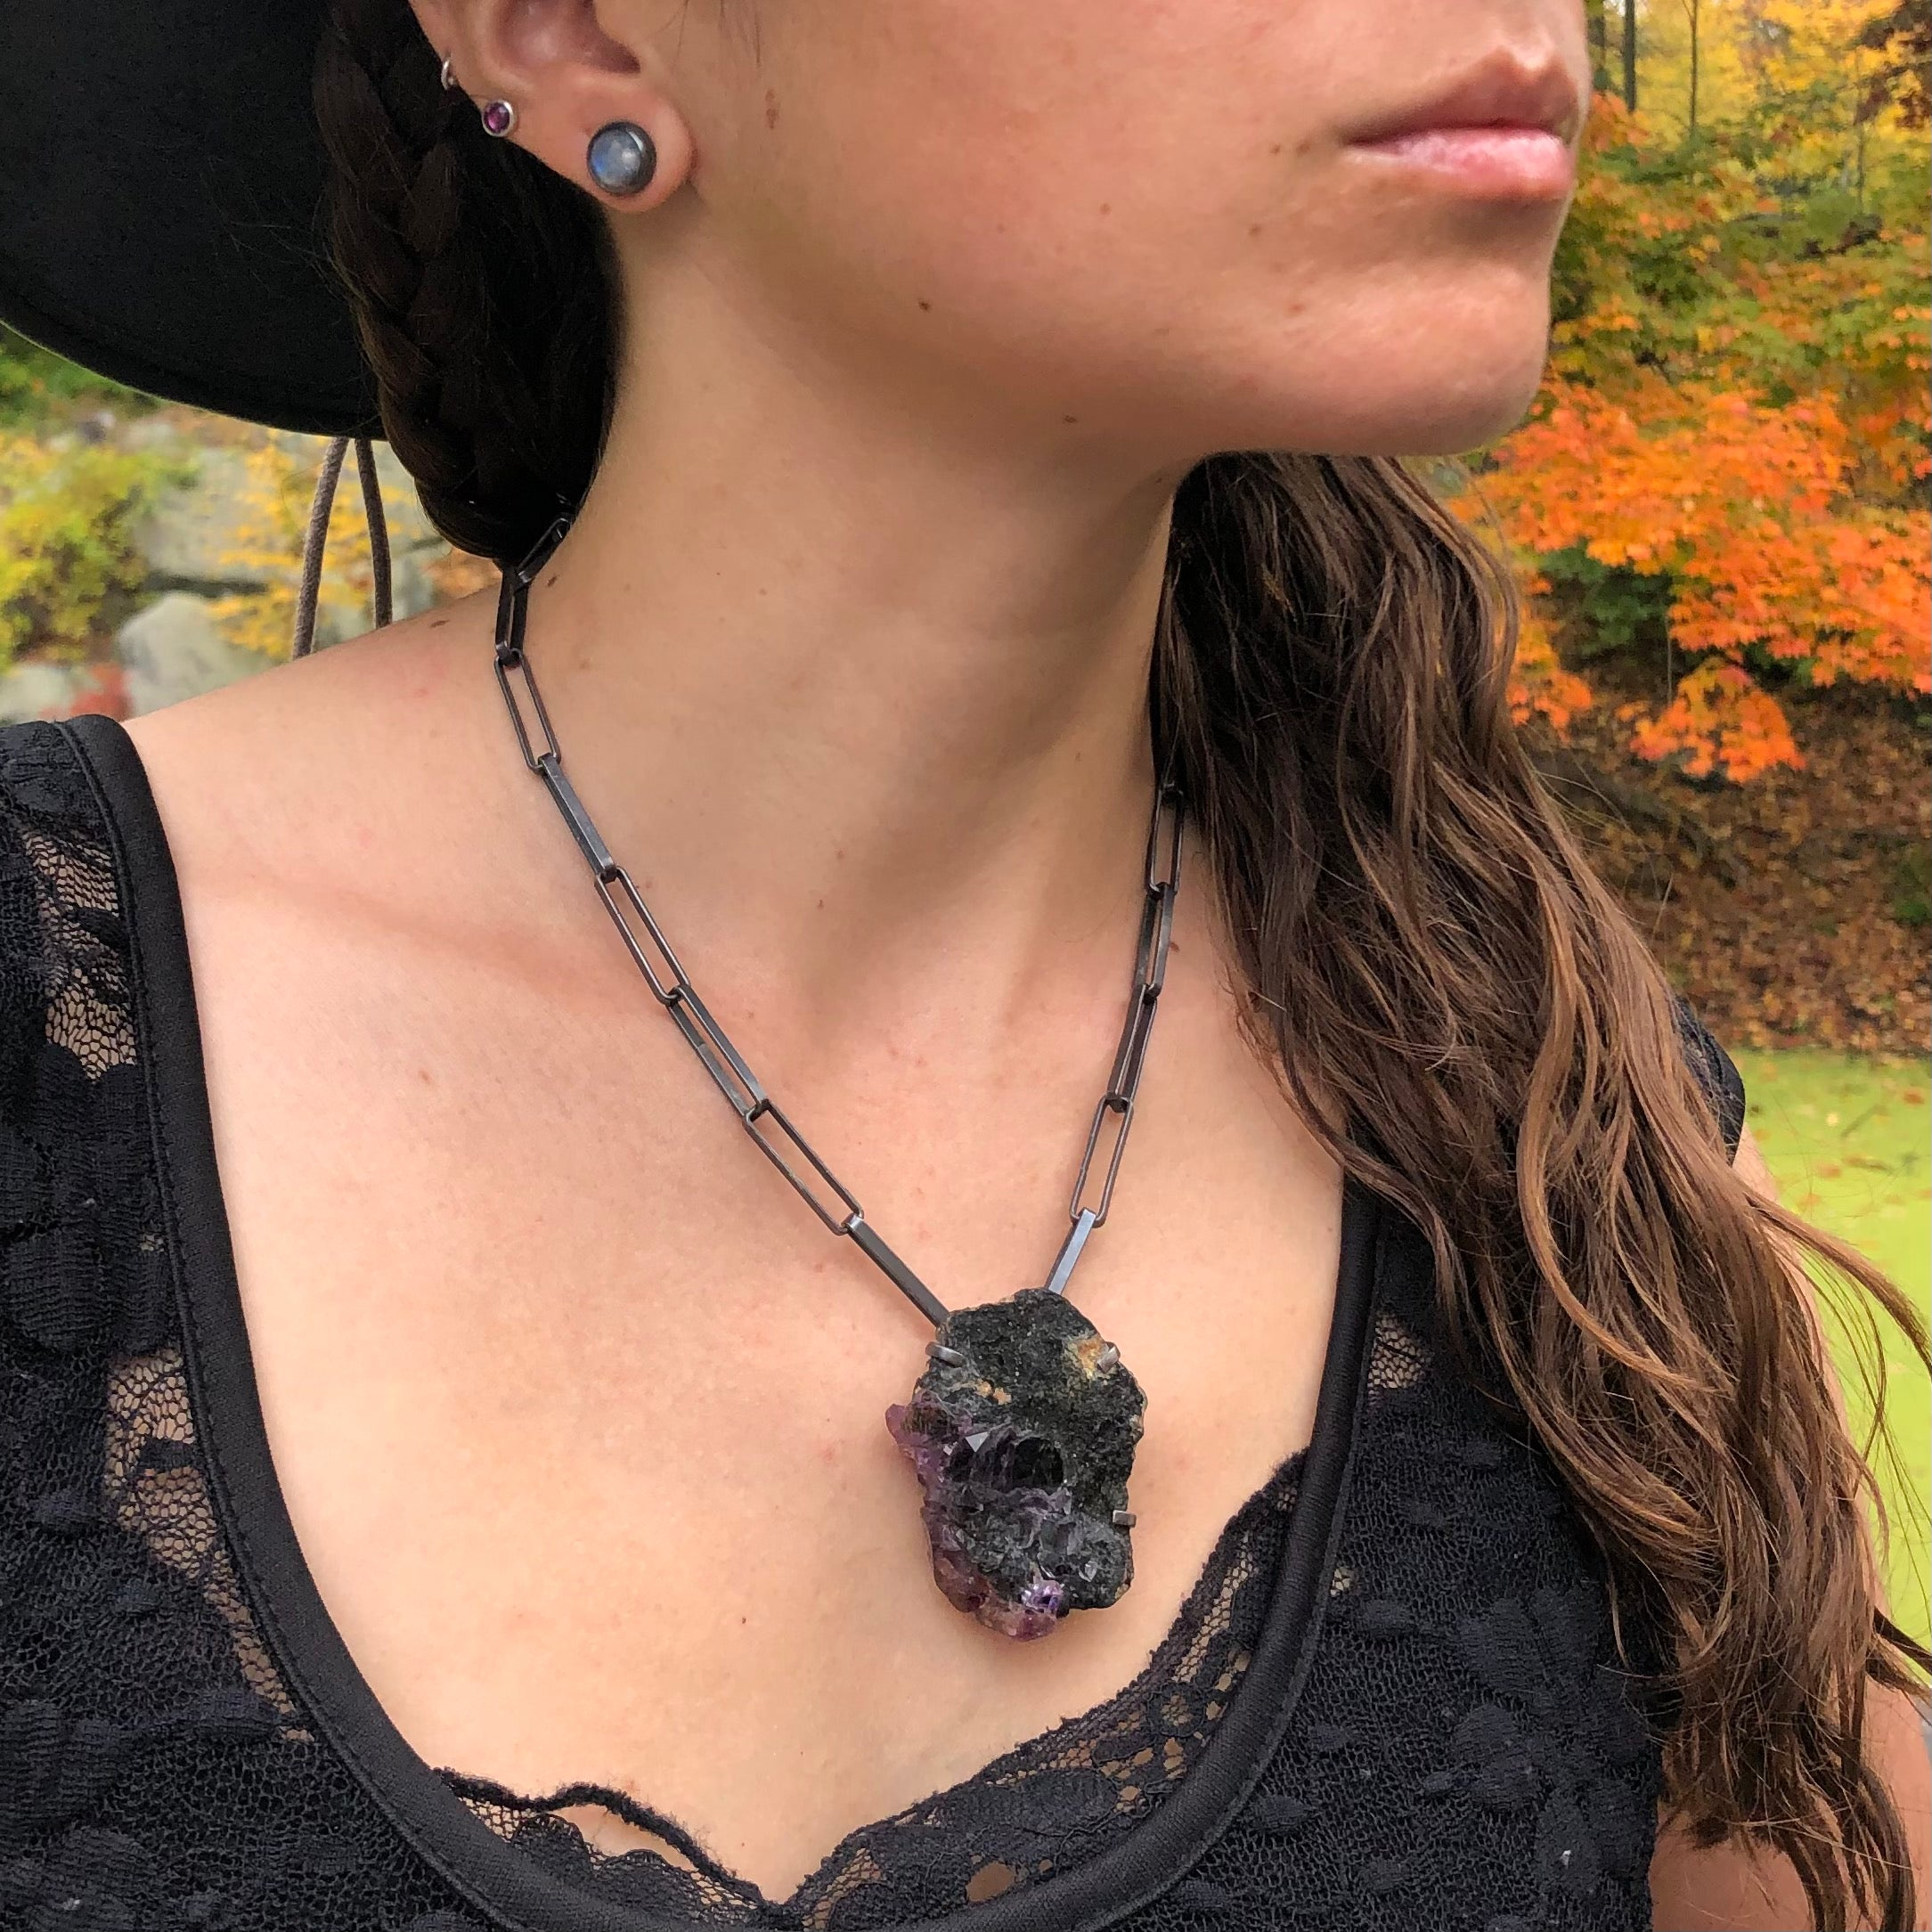 Rough Amethyst Magical Talisman Necklace. Handmade by Alex Lozier Jewelry. Season of the Witch collection.